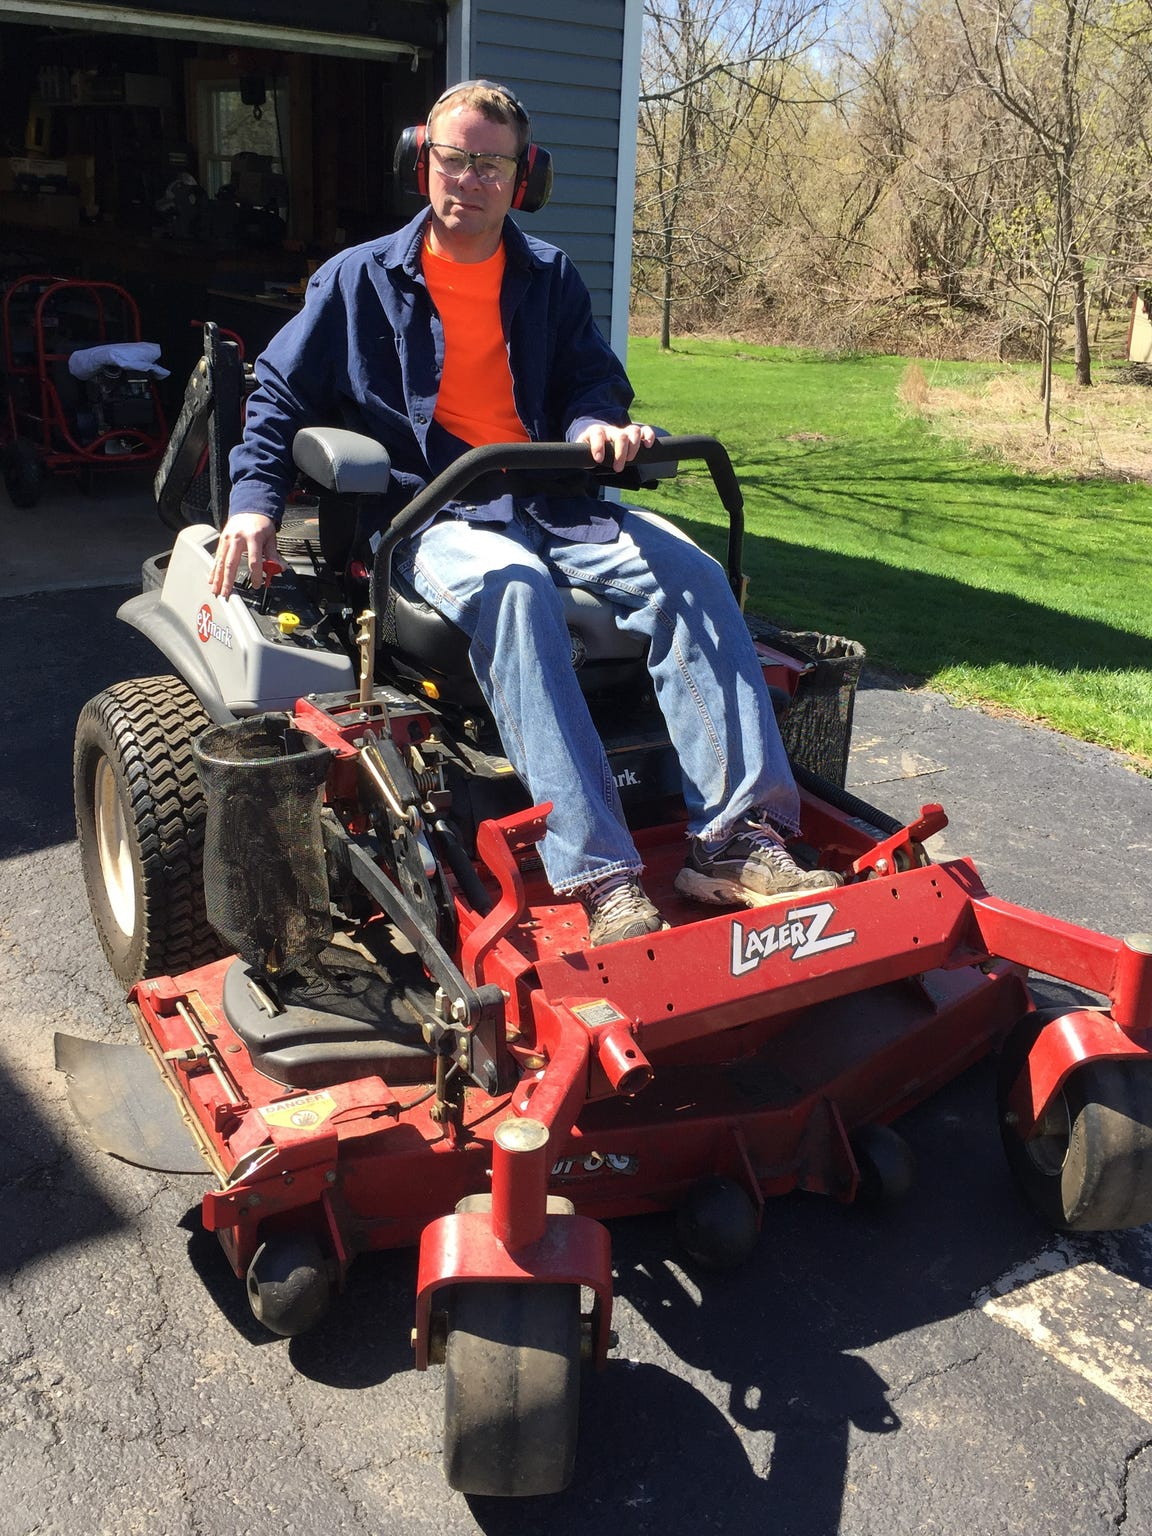 Kevin Flannery heading out to mow his grass for the